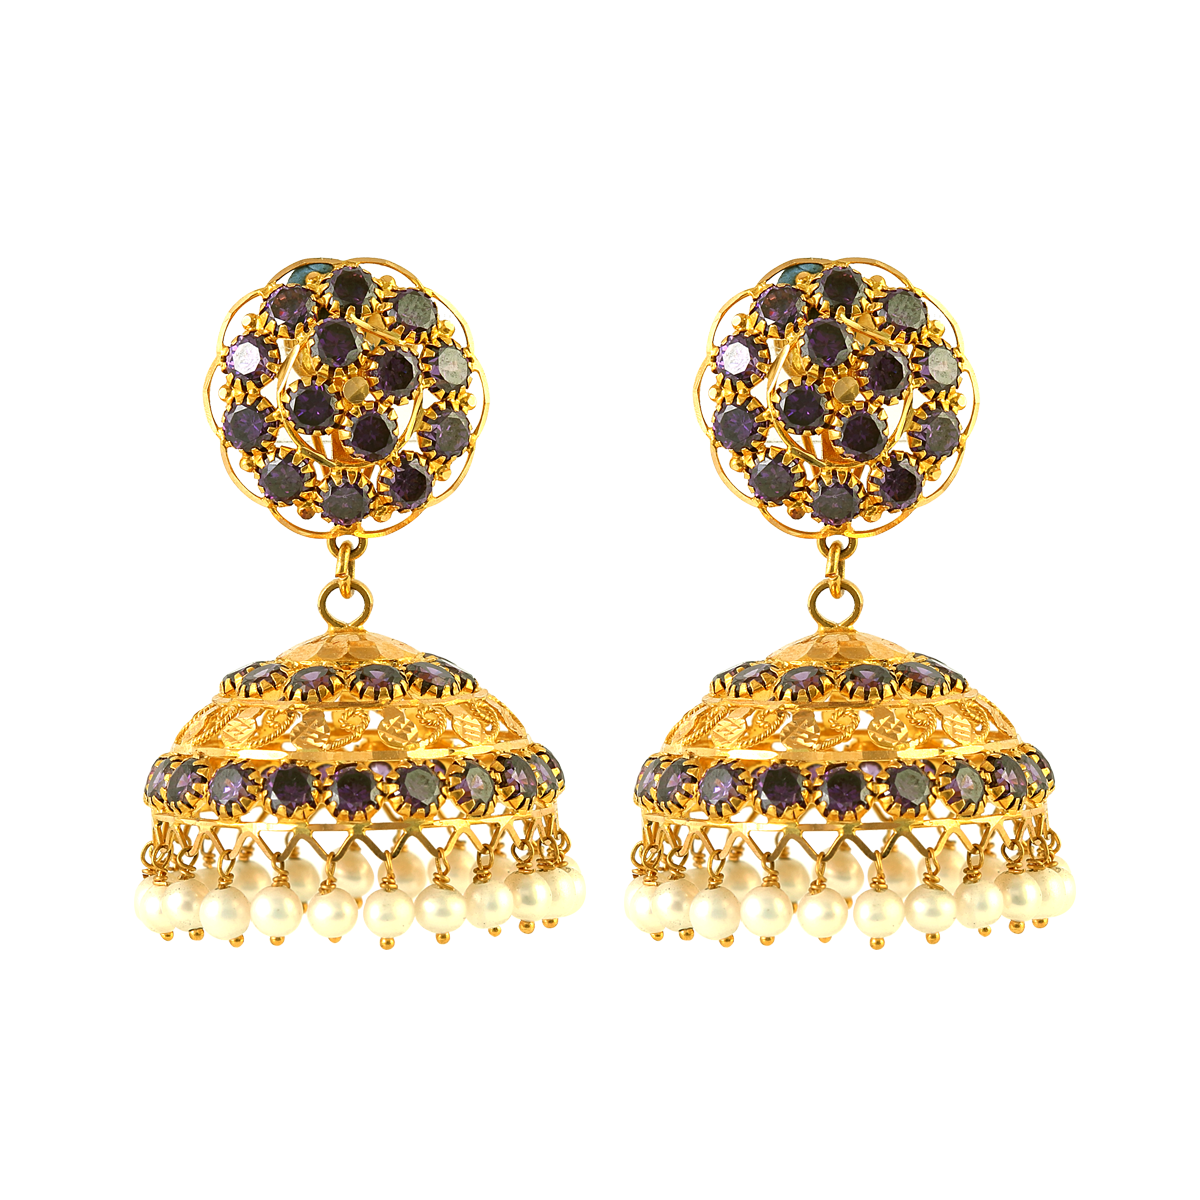 Women jewelry png. Gold earrings collections south